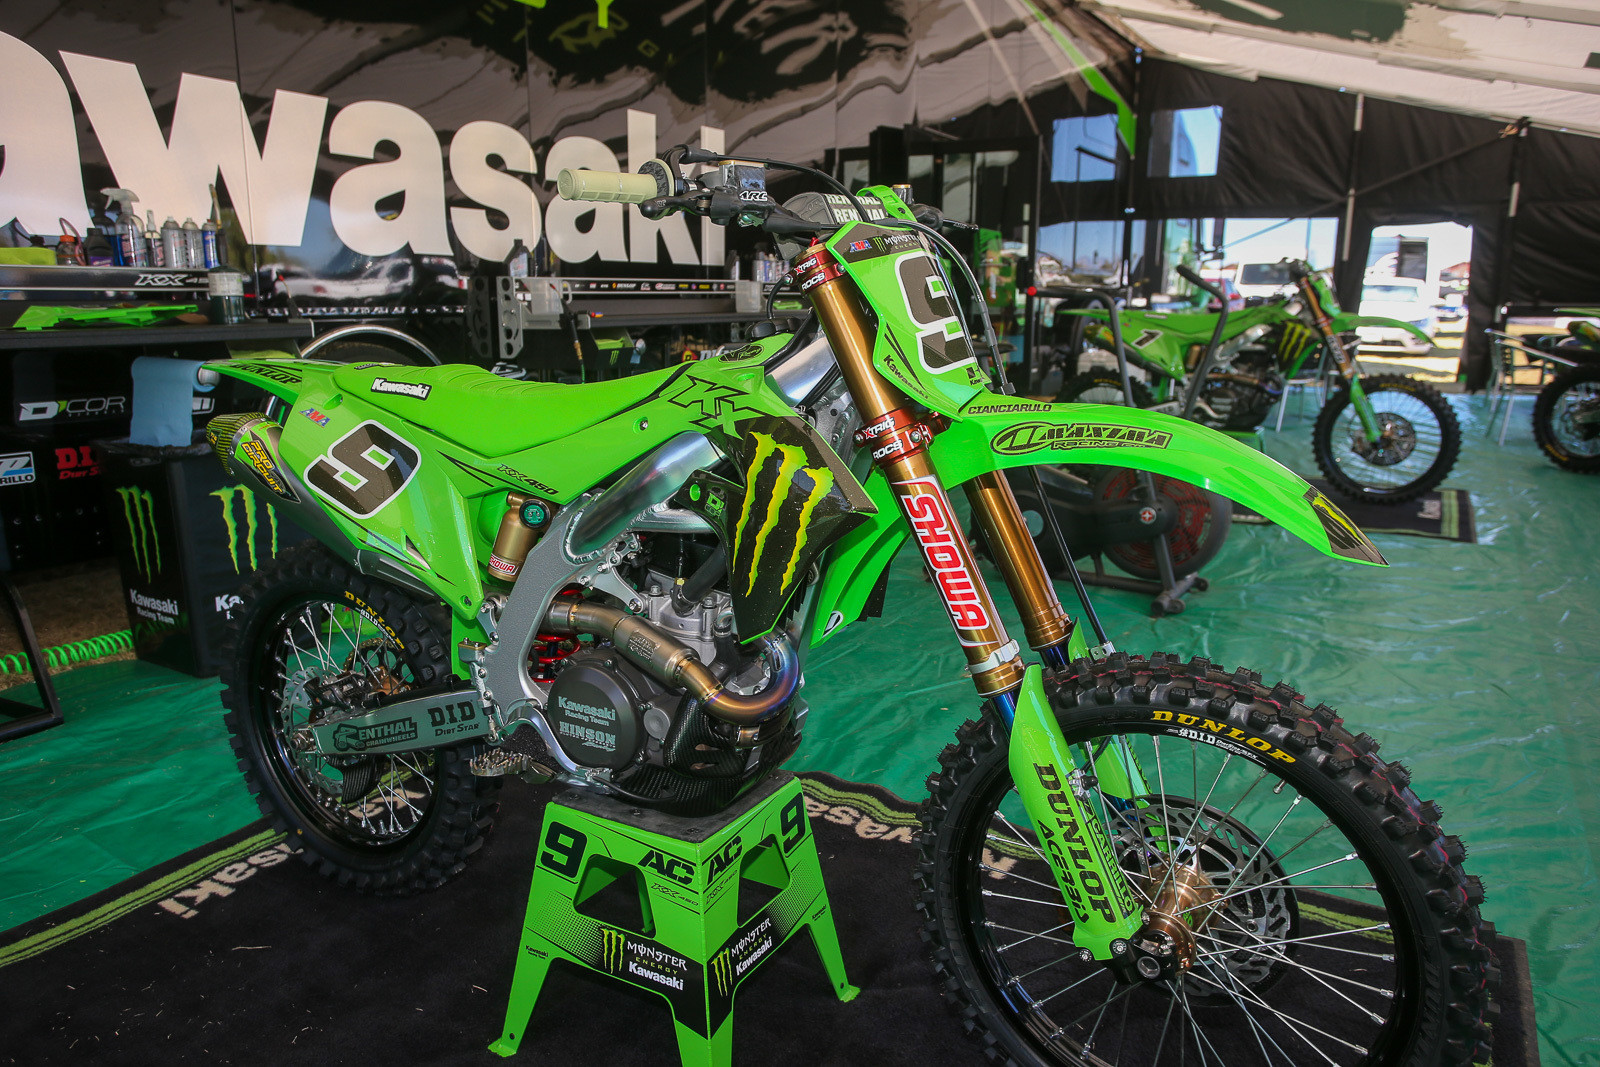 Monster Energy Kawasaki (along with D'Cor) usually does something pretty spectacular for the Monster Energy Cup, and this year was no exception. We liked the added green for the bikes of Adam Cianciarulo and Eli Tomac.